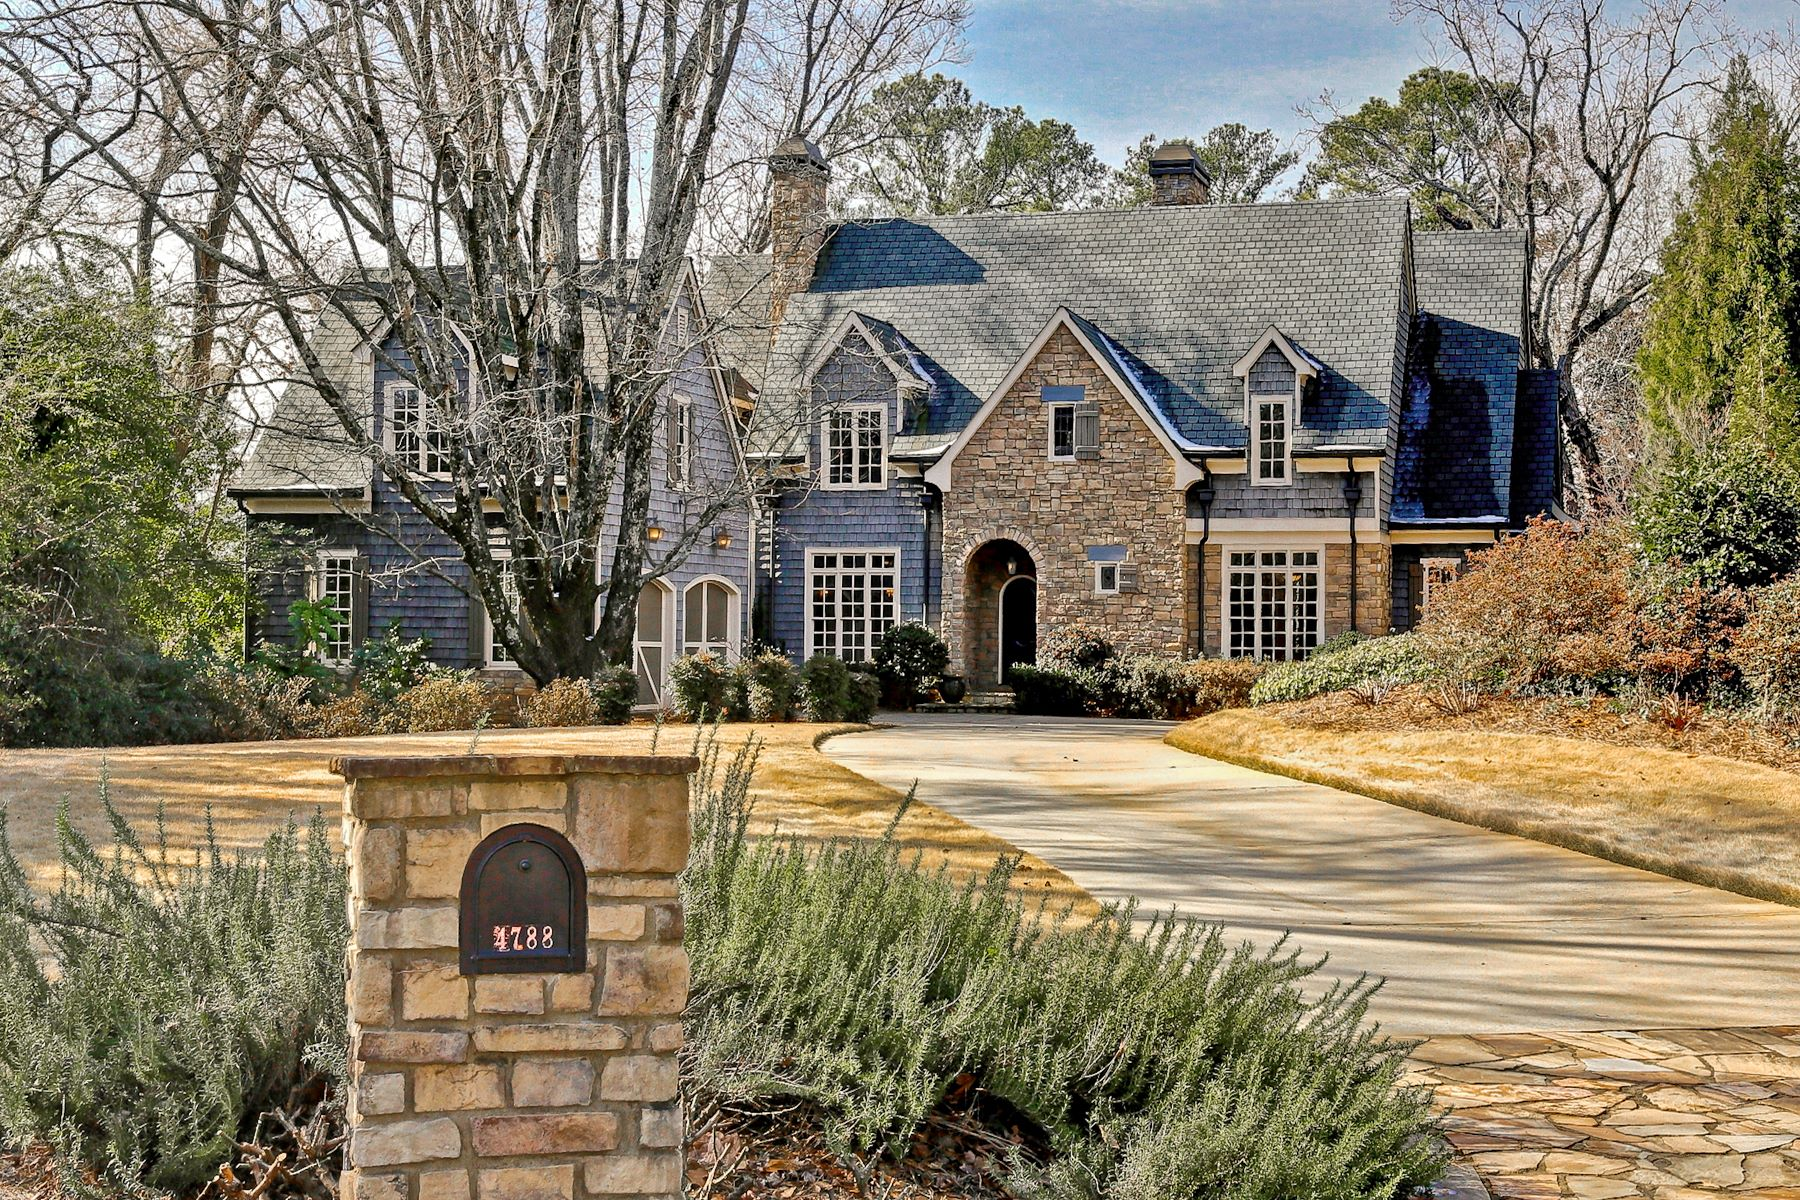 Vivienda unifamiliar por un Venta en Absolutely Stunning Custom Built Home In Chastain Park Area 4788 Dudley Lane Atlanta, Georgia, 30327 Estados Unidos